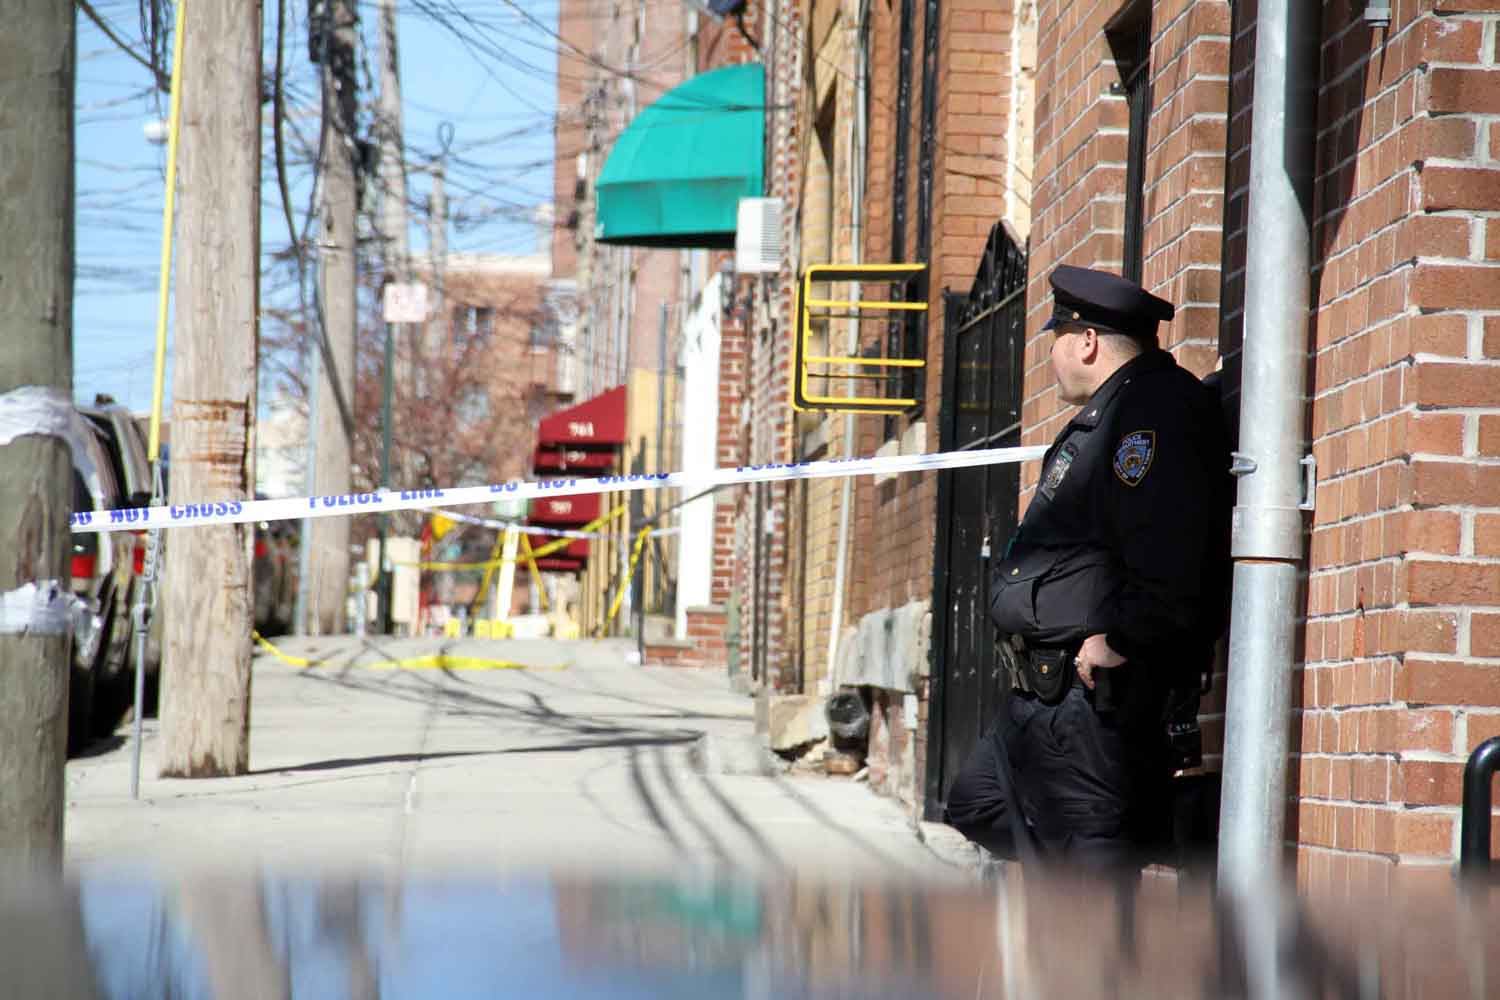 A police officer guards the scene where Margarita Franco, 26, was found shot to death along East 214 Street in Williamsbridge.--Photo by David Greene